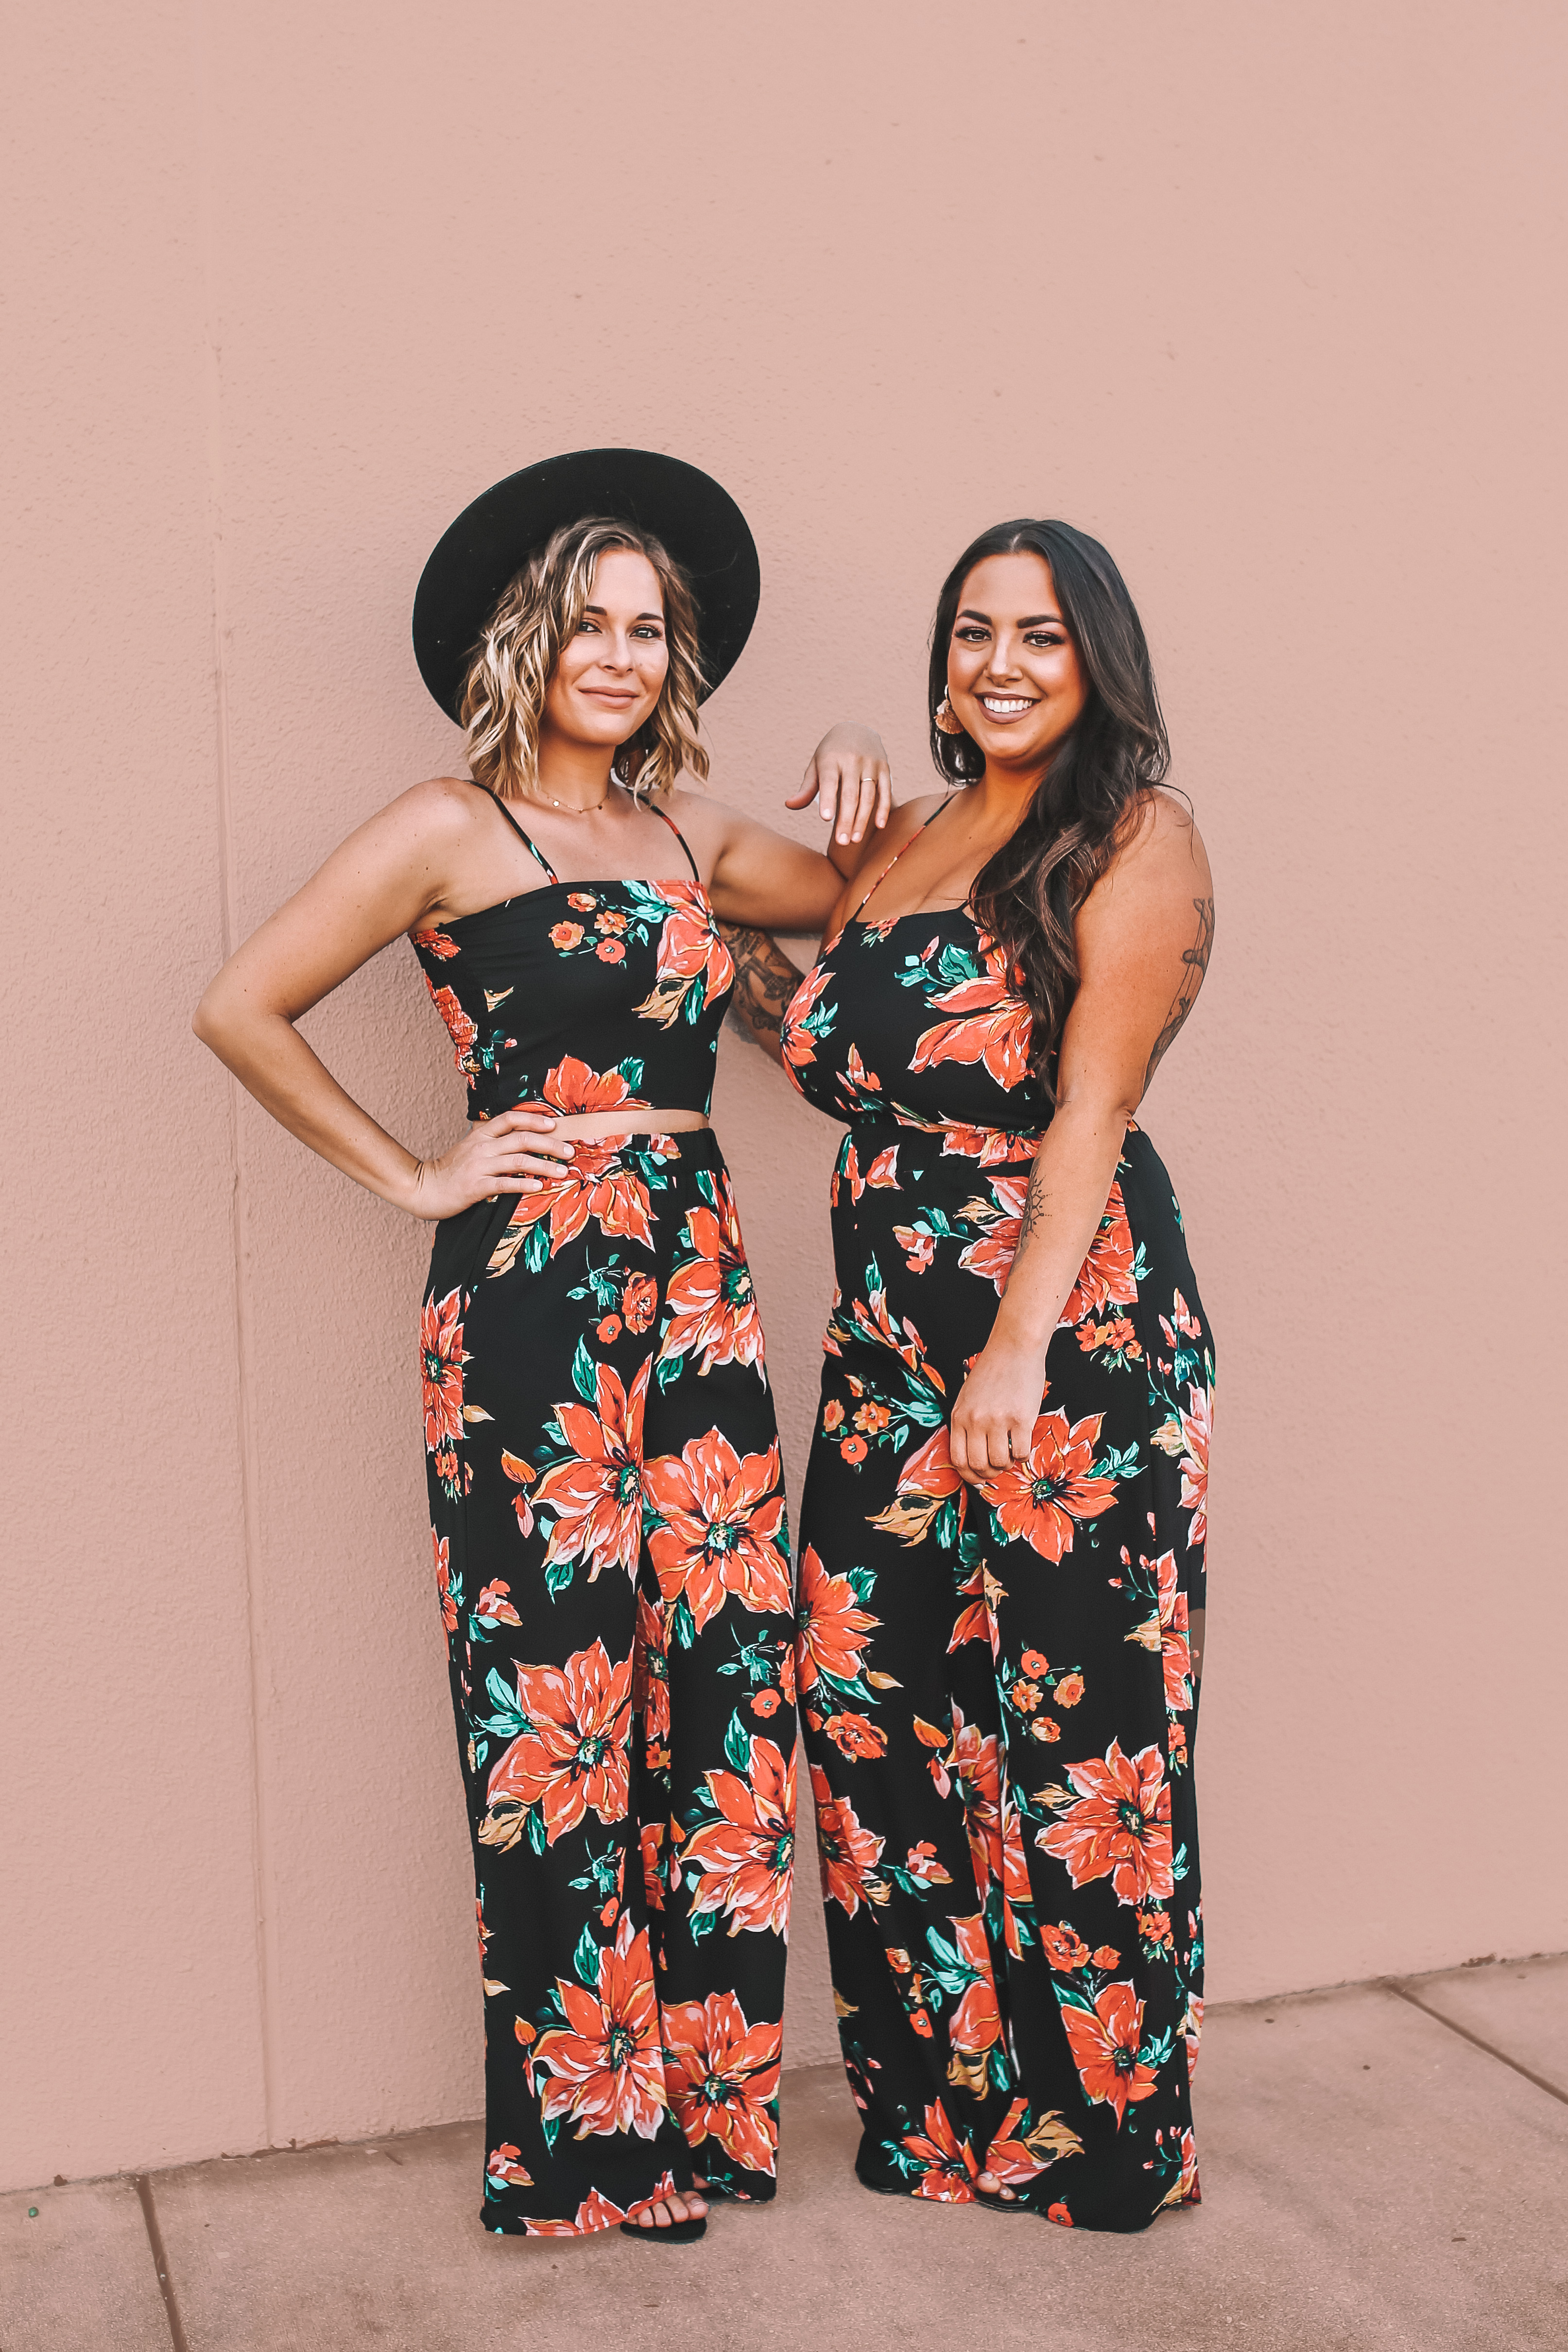 MAVERICK EXCLUSIVE! SAME BEAUTIFUL FLORAL MATERIAL AS THE LOTUS JUMPER AND KIMONO. LIGHTWEIGHT AND FLOWY. CROP TANK WIDE ADJUSTABLE STRAPS AND RUCHED ELASTIC BACK. WIDE LEG, ELASTIC WAIST PANTS WITH SIDE POCKETS. 32 IN. INSEAM.